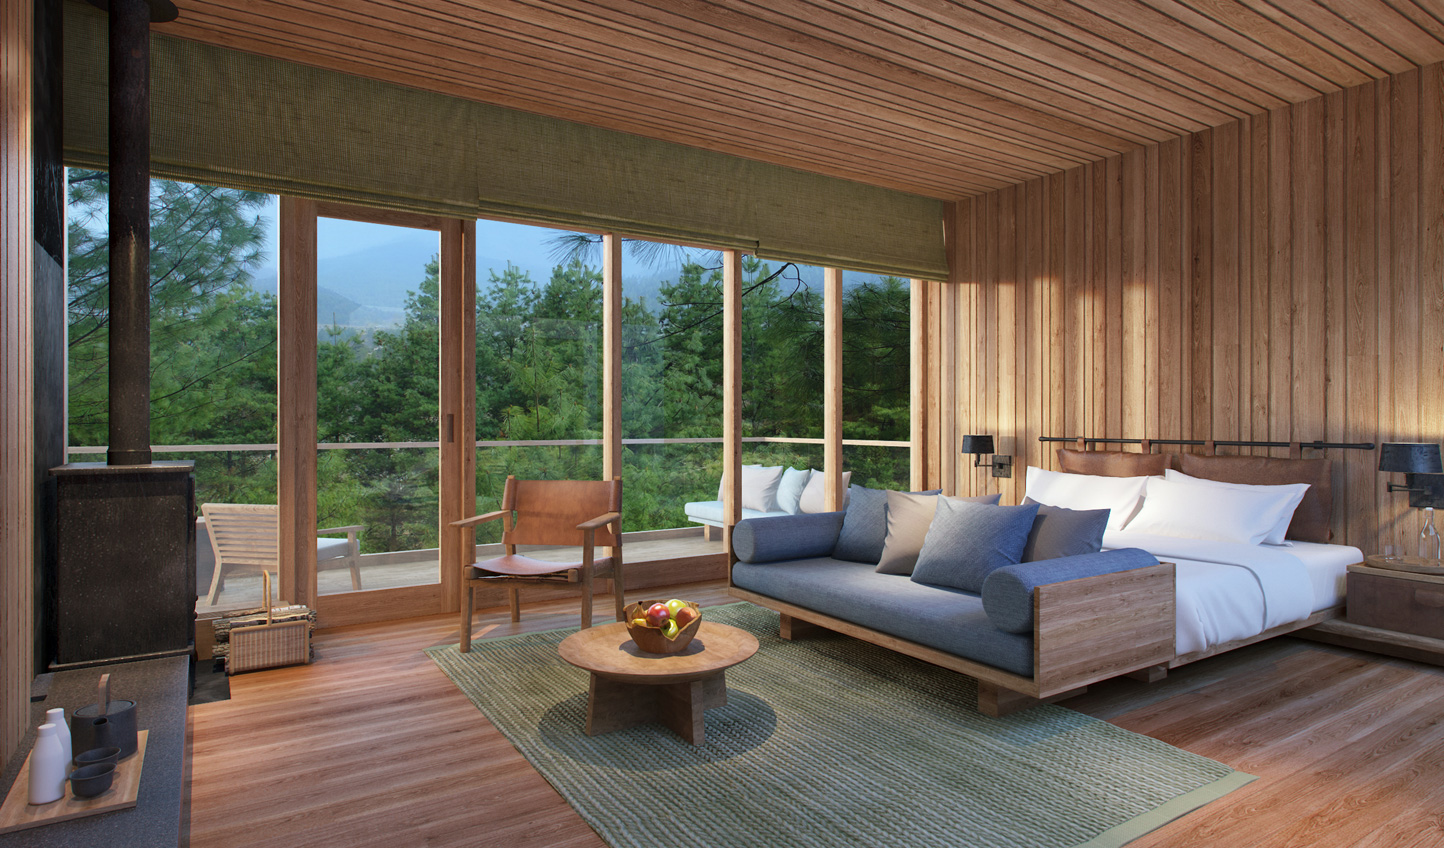 Natural materials place emphasis on surrounding landscapes at Six Senses Bumthang